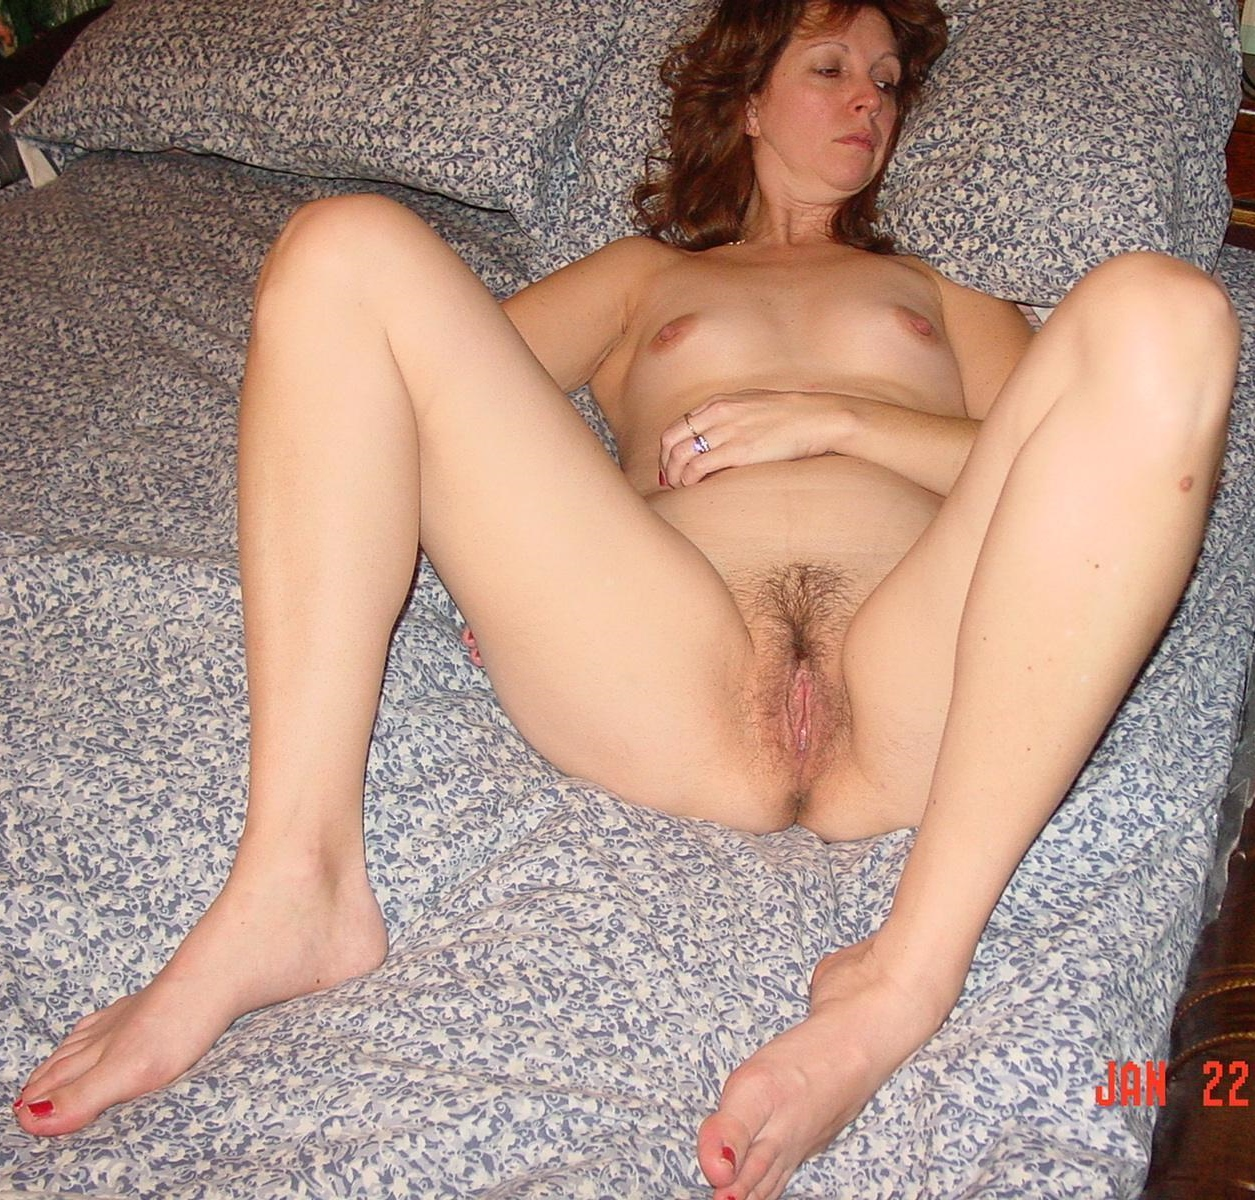 Grannymommilf spreading legs wide for boy to see